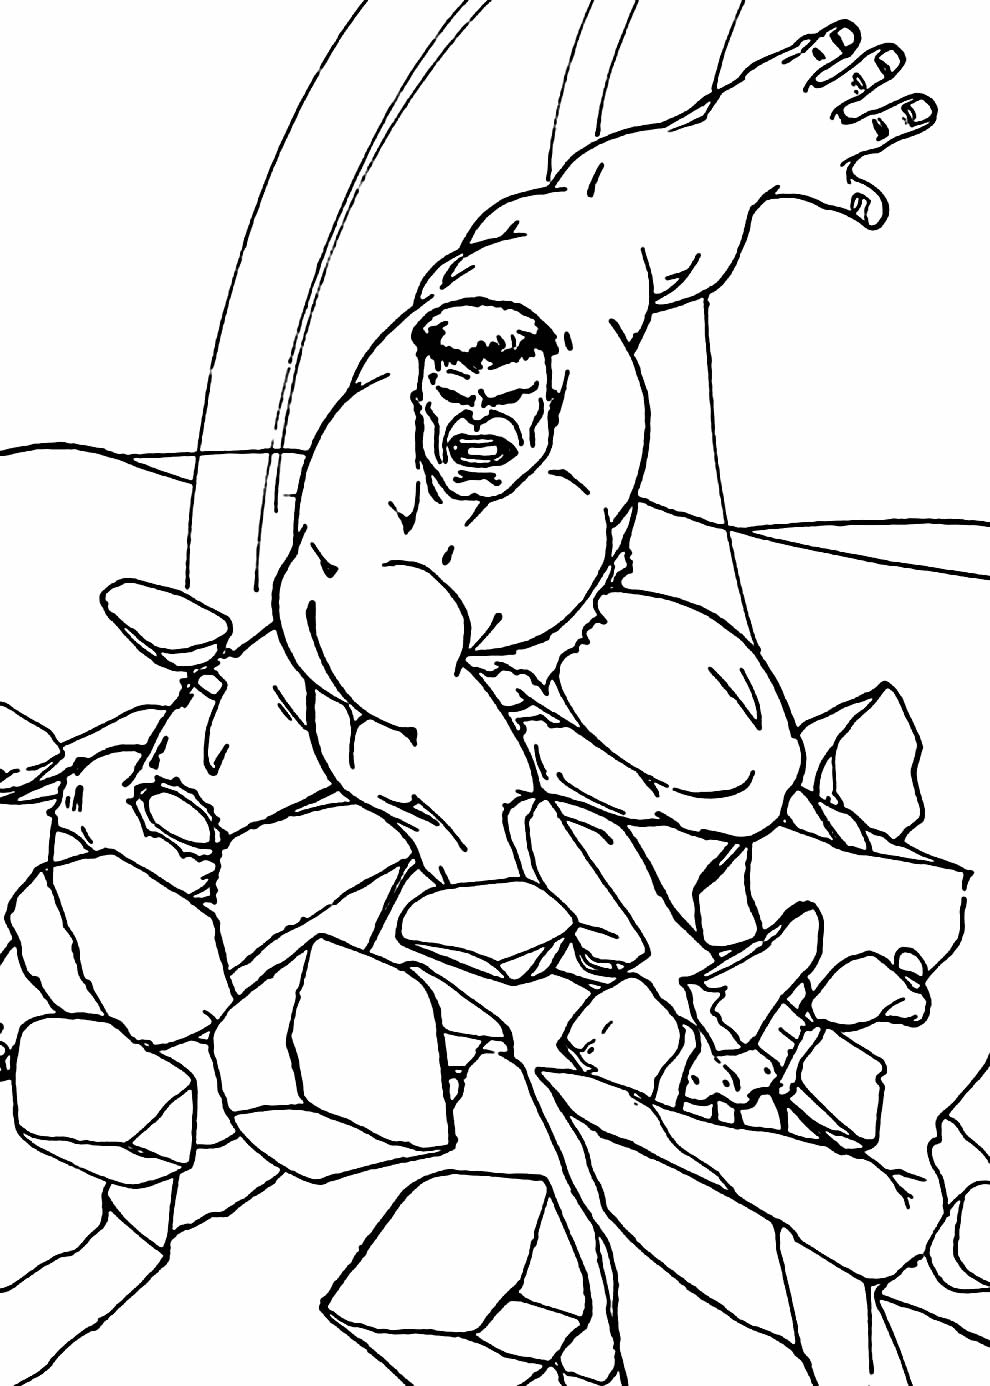 Molde do Hulk para colorir